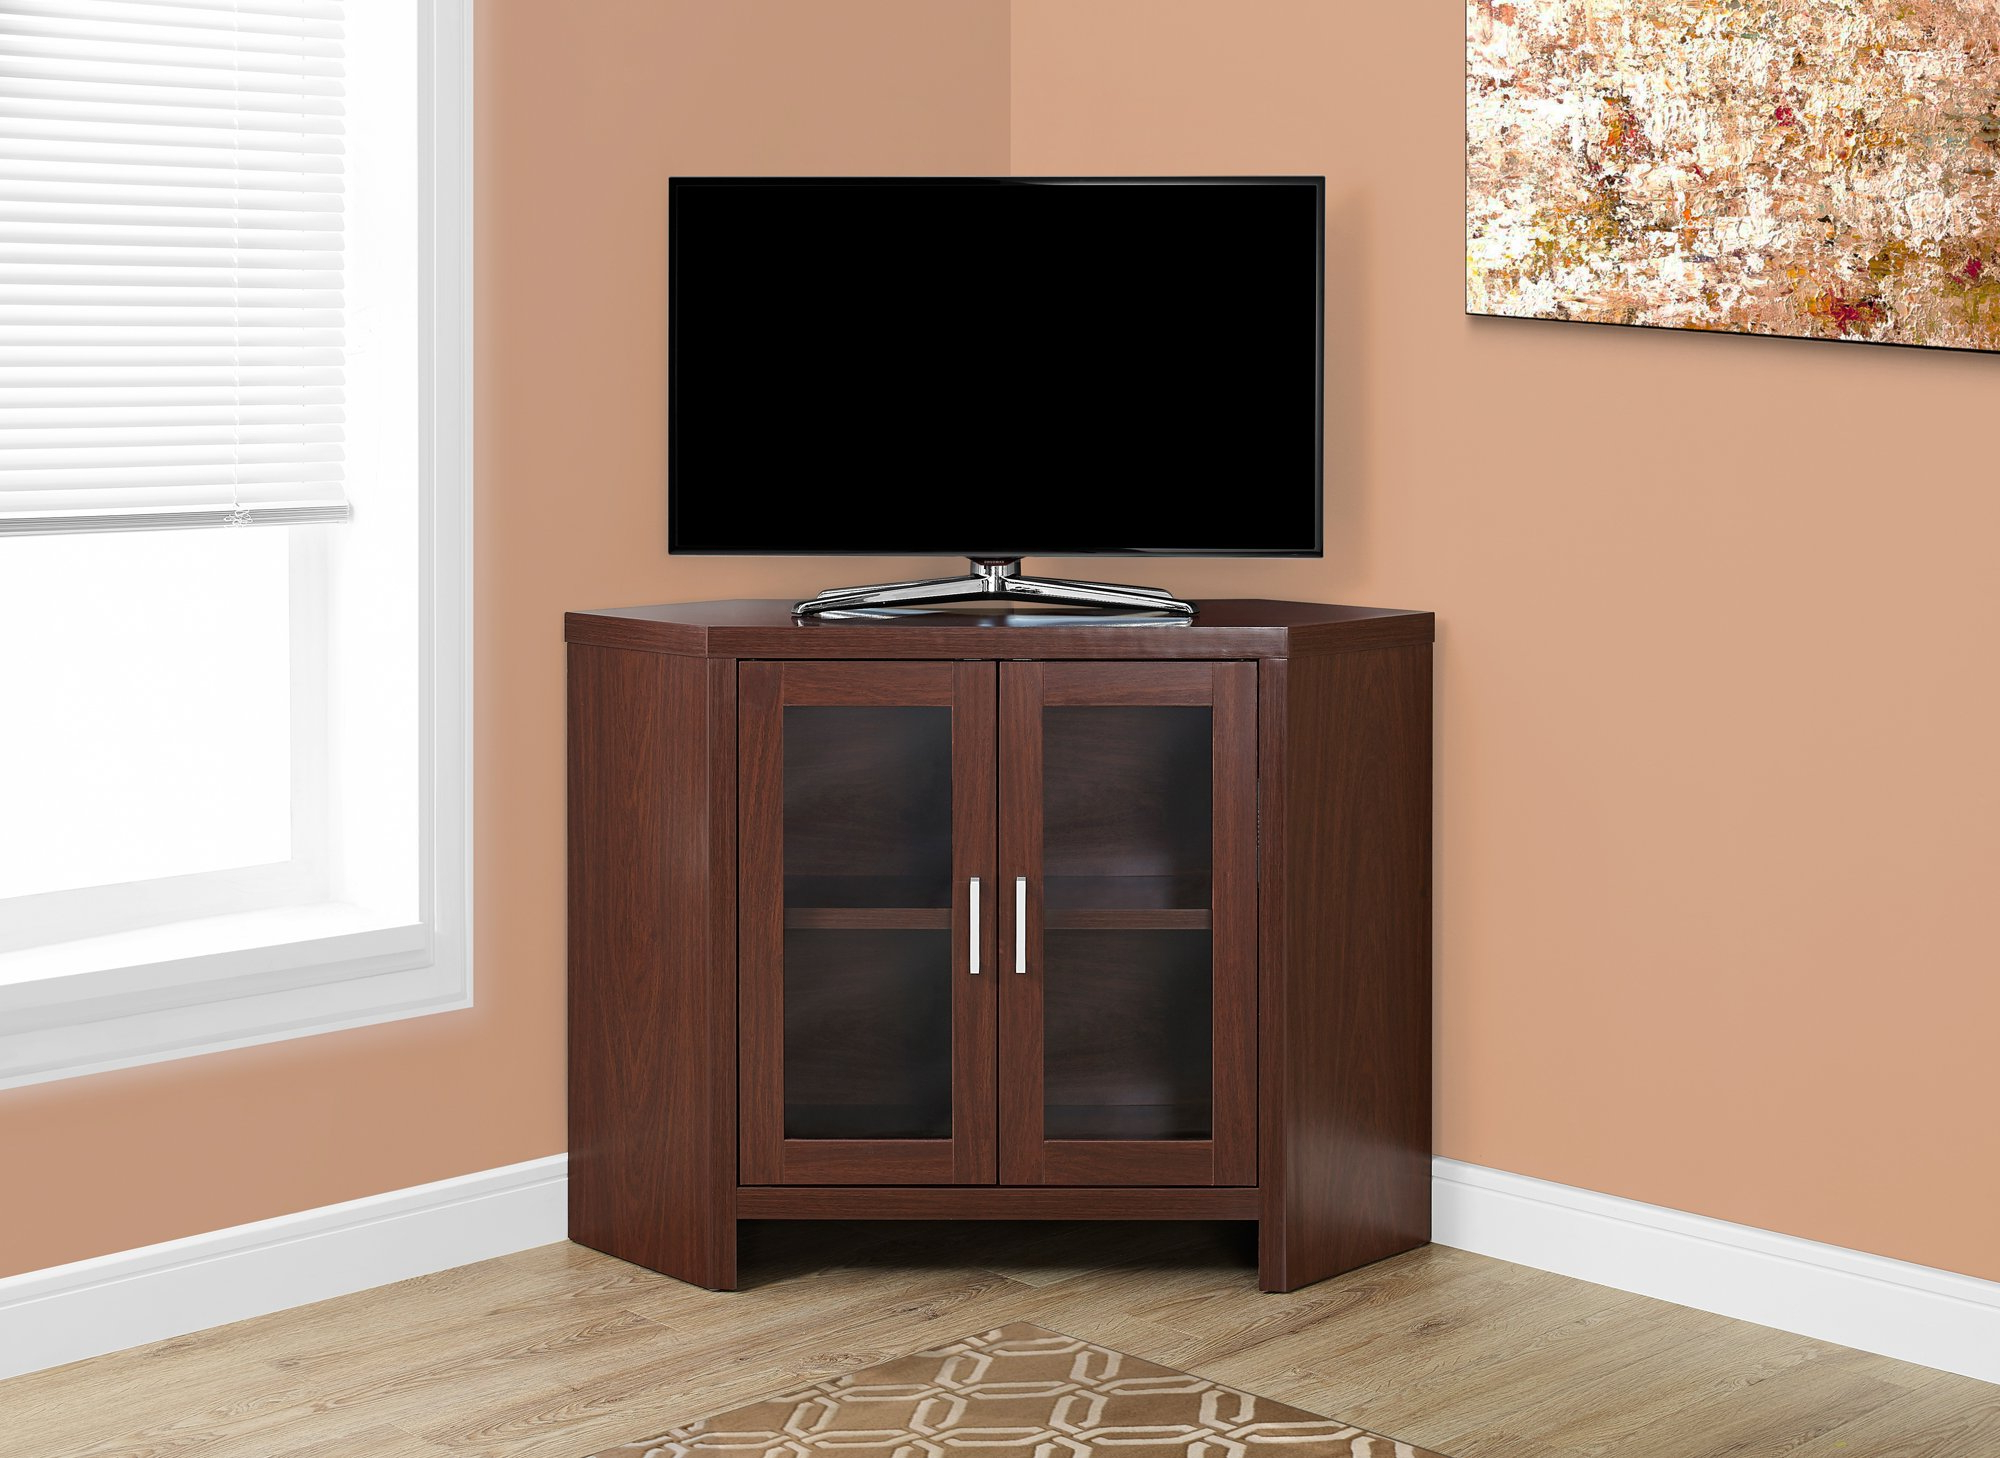 Most Recent Cheap Corner Tv Stand Glass Doors, Find Corner Tv Stand Glass Doors Throughout Corner Tv Cabinets With Glass Doors (Gallery 13 of 20)